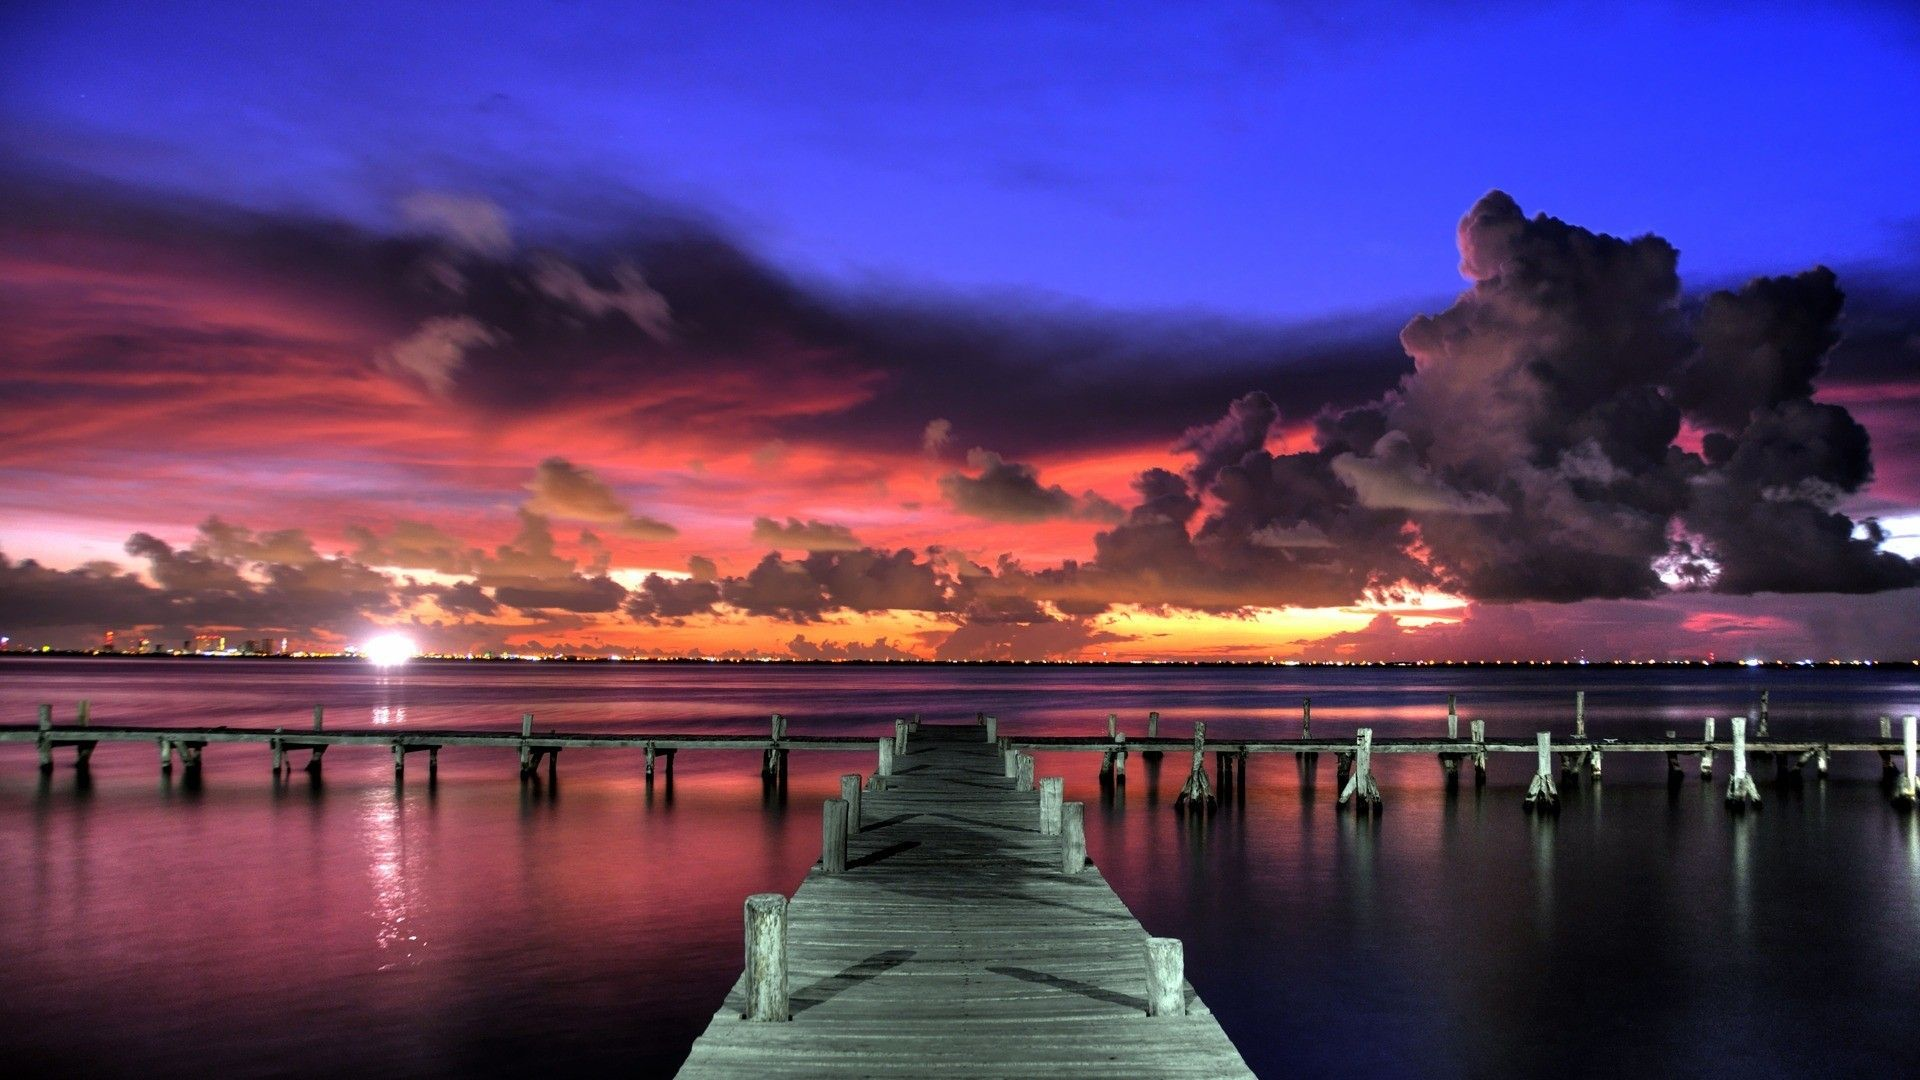 Download Wallpaper 1920x1080 Pier, Sunset, Sky, View Full